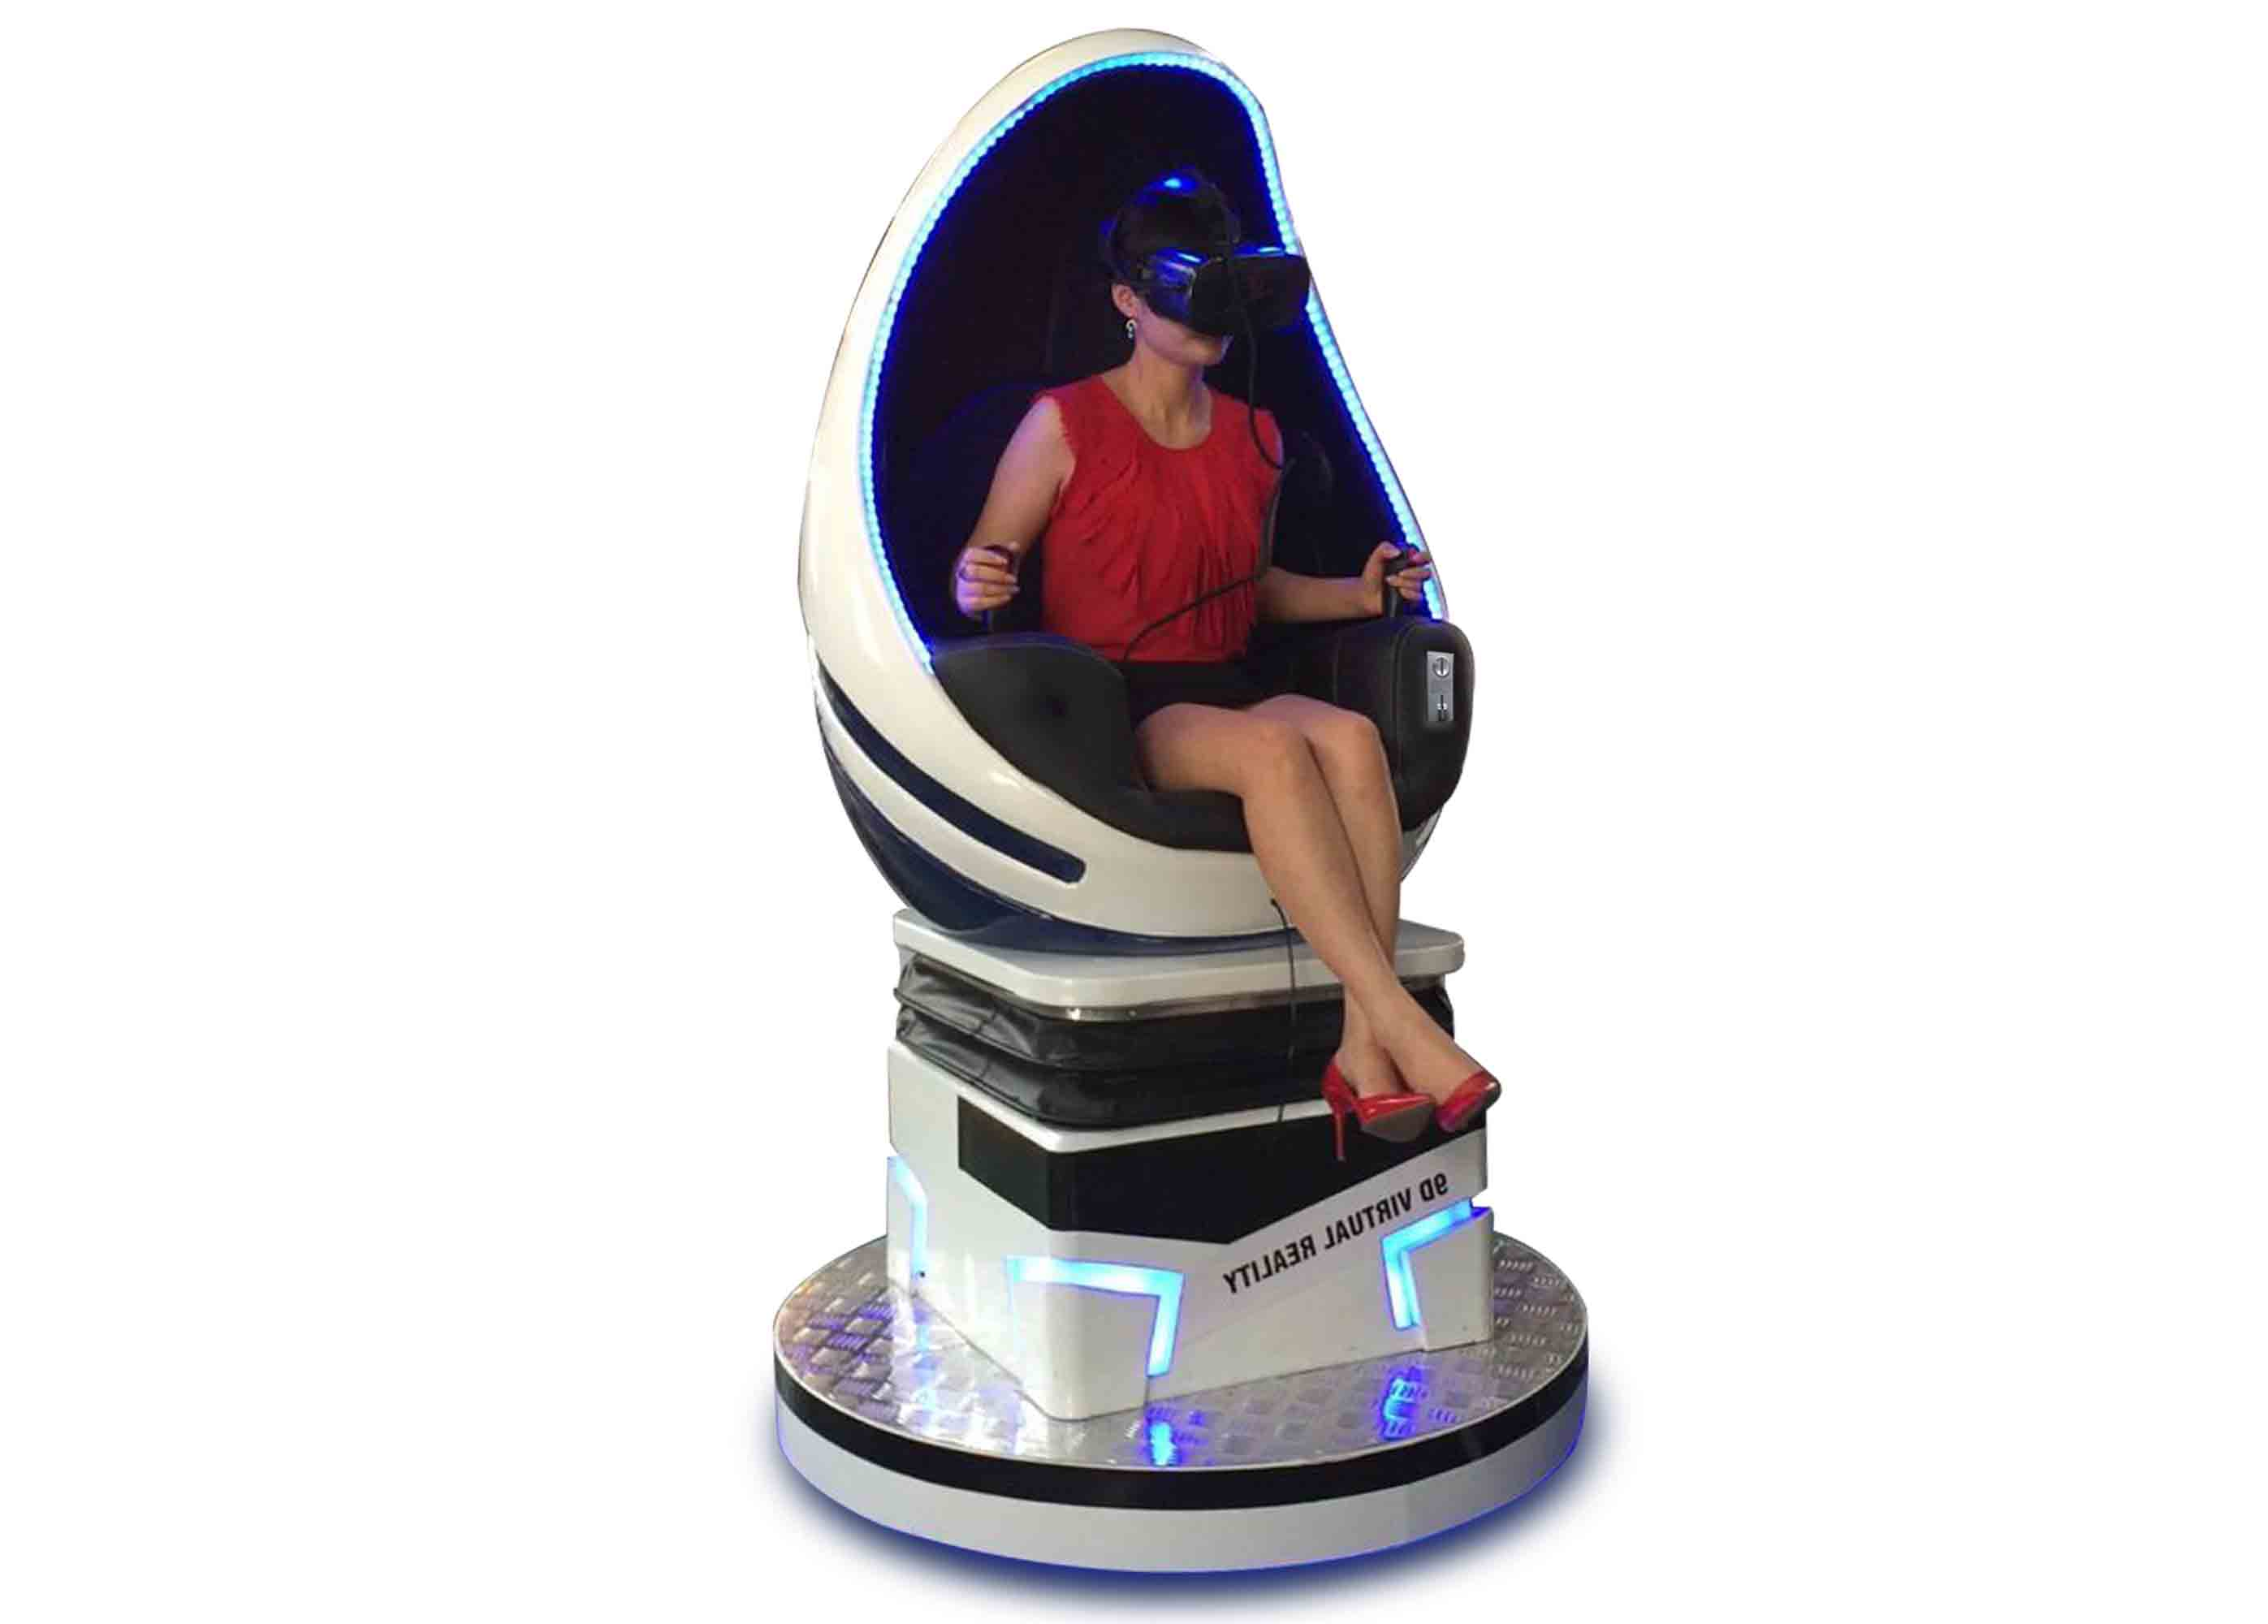 Egg Chair Indoor Egg Chair Vr Games One Seat Can Be Placed In Indoor Playground